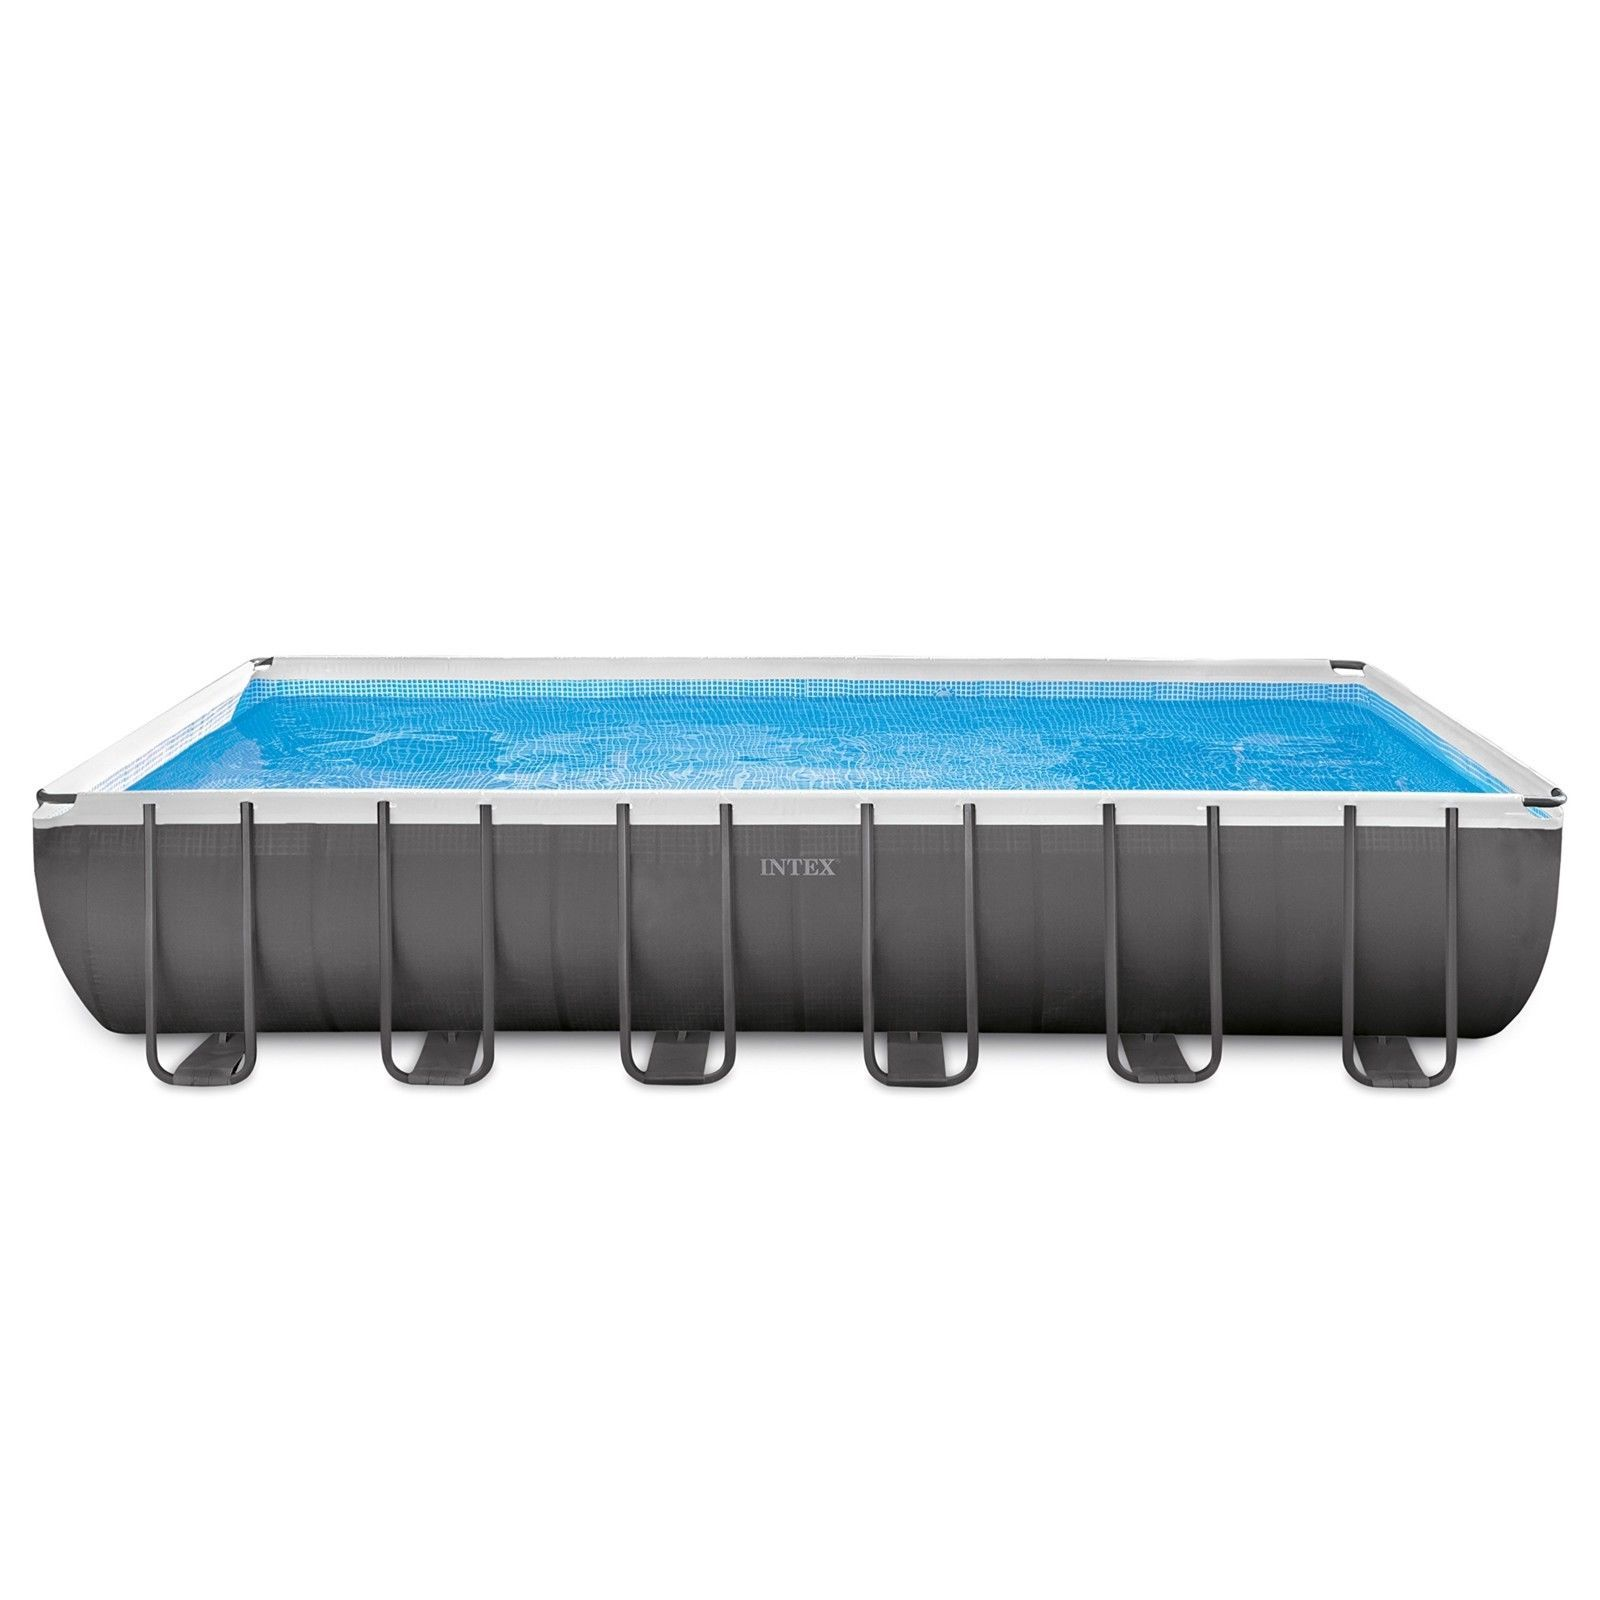 Intex Above Ground Swimming Pool Set with and 50 similar items